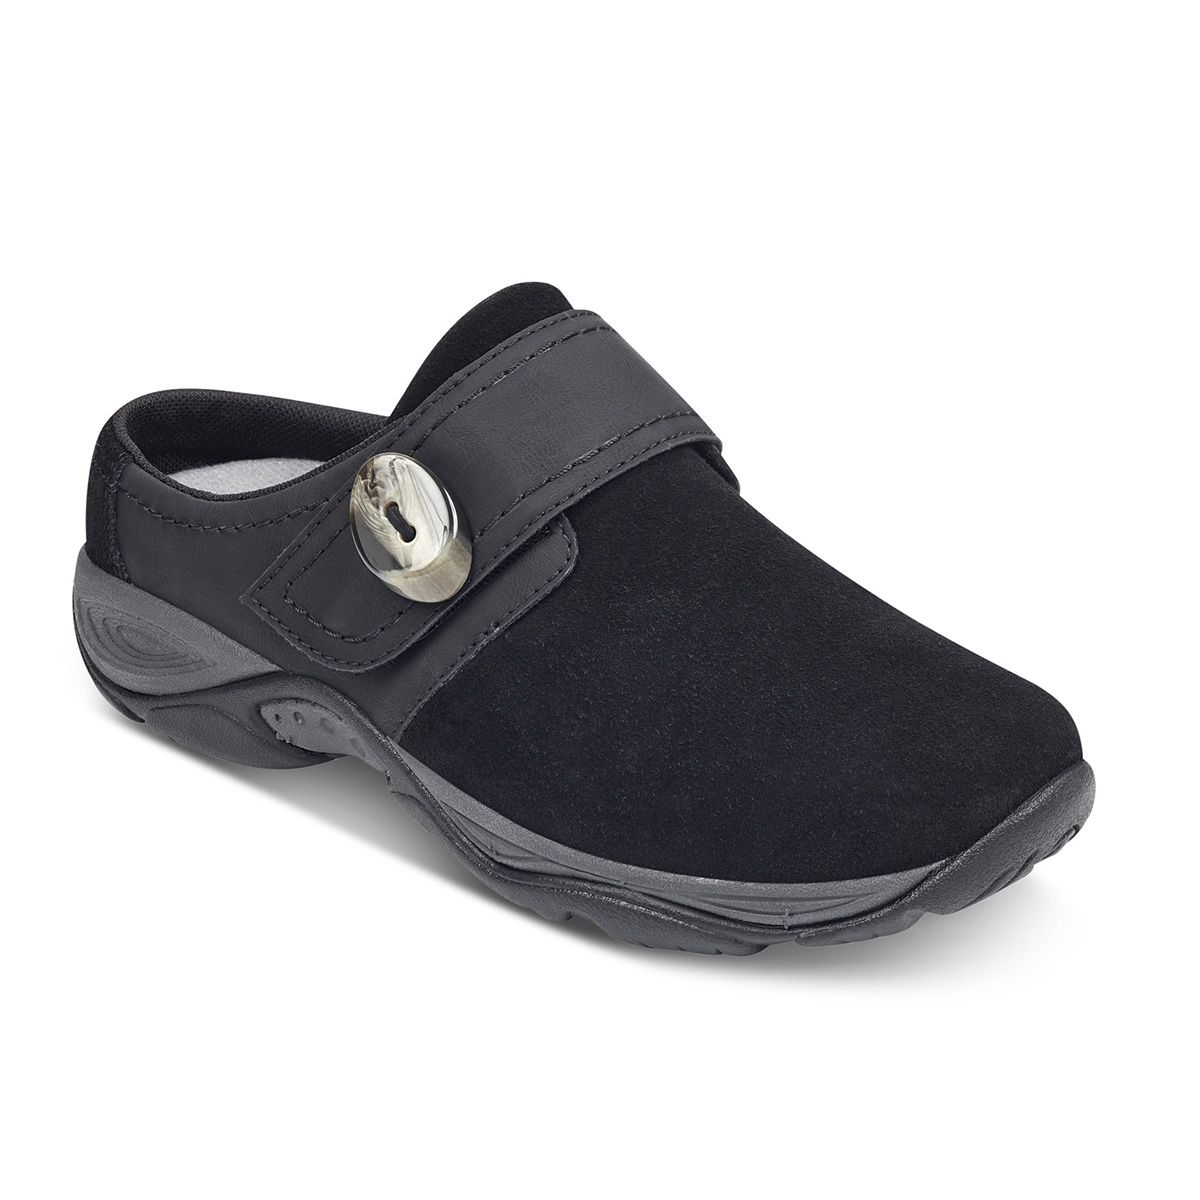 d4408c8c240 Easy Spirit Shoes - Macy's